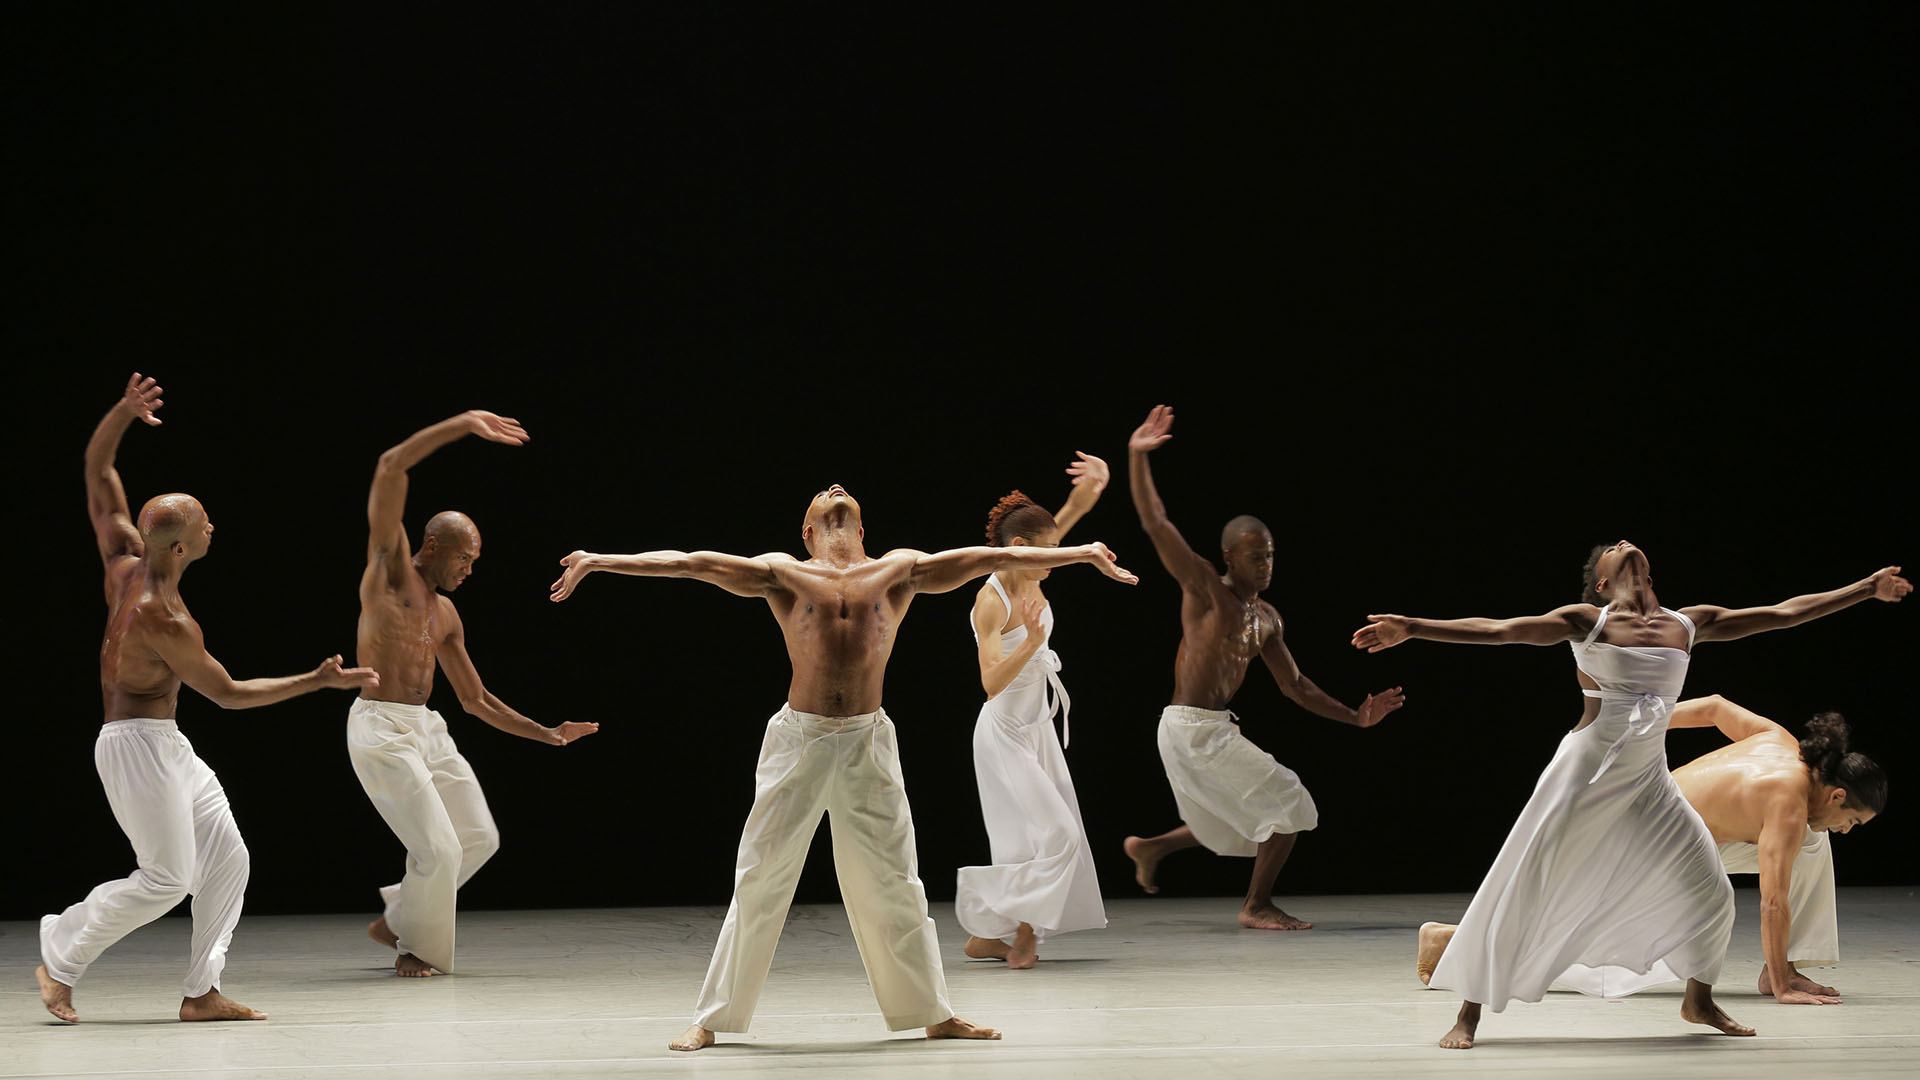 Lincoln Center at the Movies: Alvin Ailey American Dance Theater